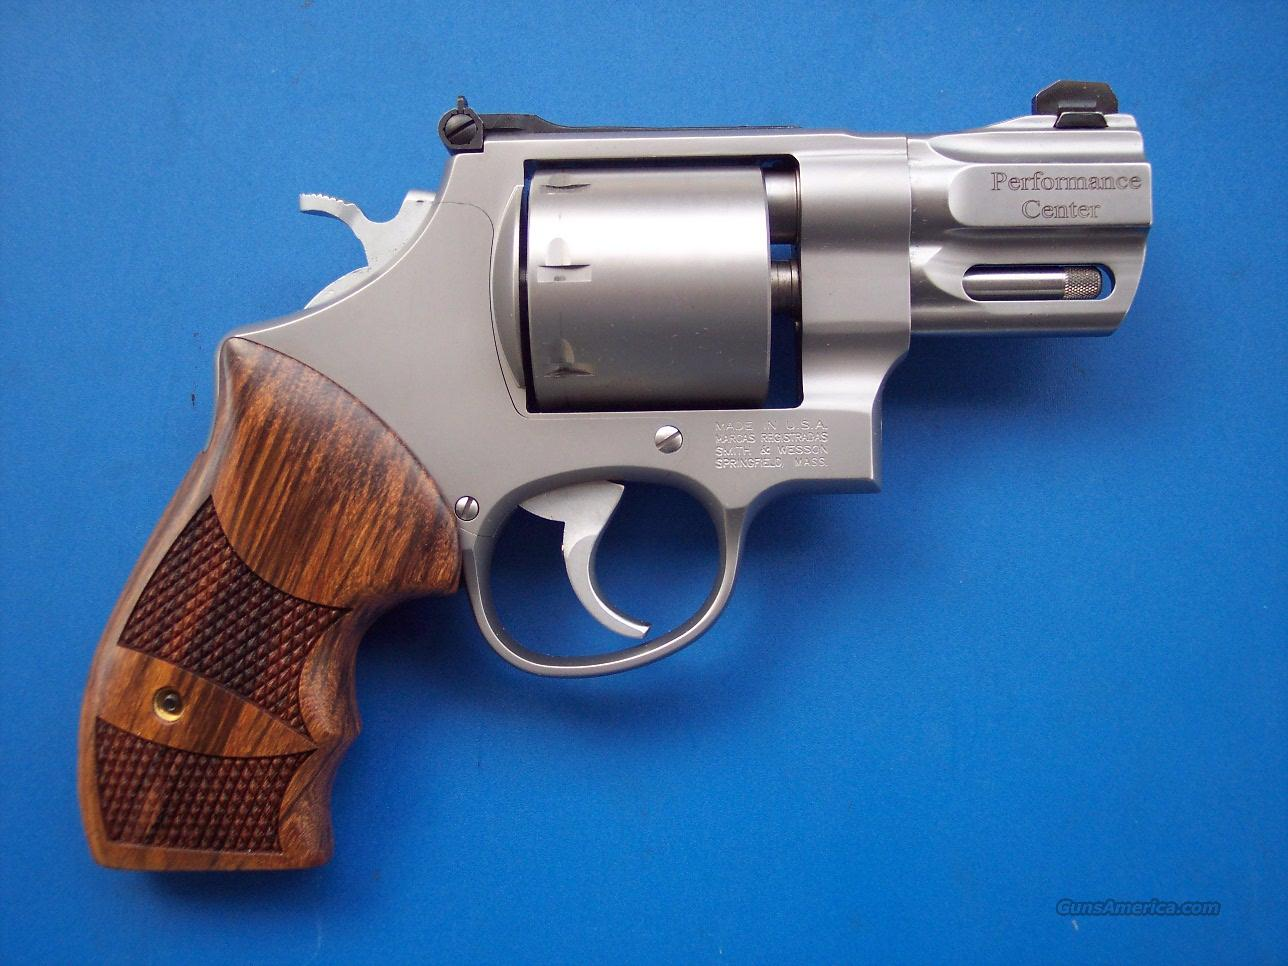 Smith & Wesson 627 Performance Center 8 Shot *NEW*  Guns > Pistols > Smith & Wesson Revolvers > Performance Center